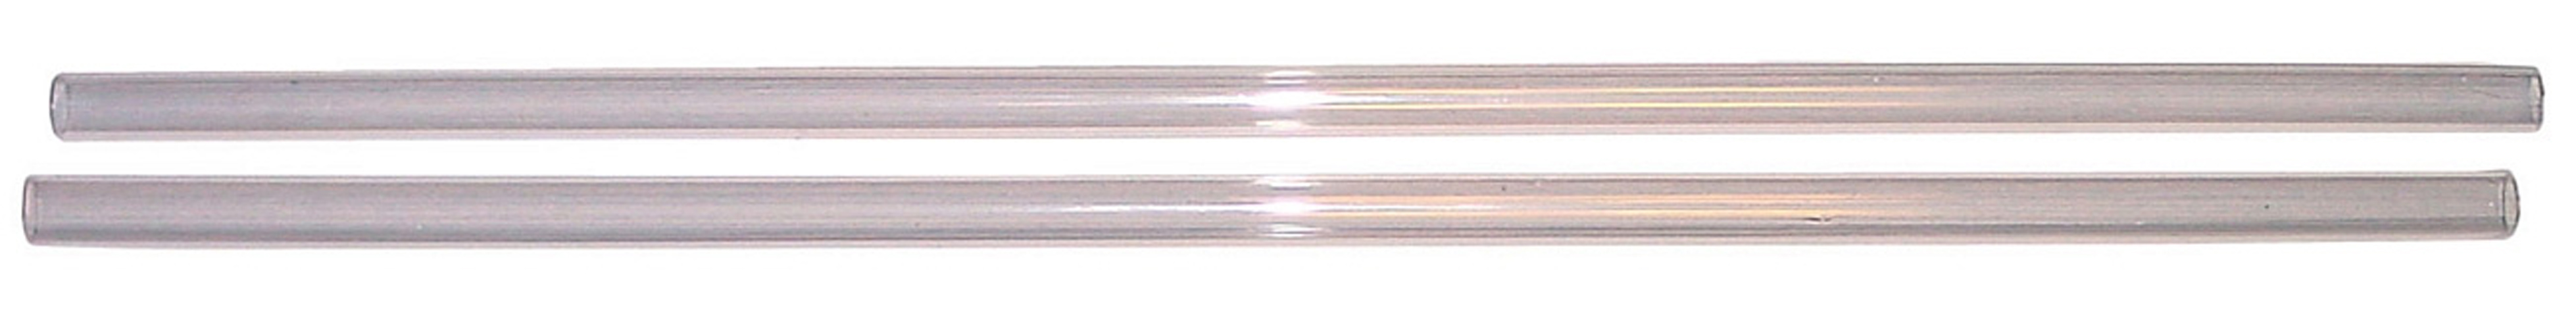 Trombone Slide Guard - Set of 2